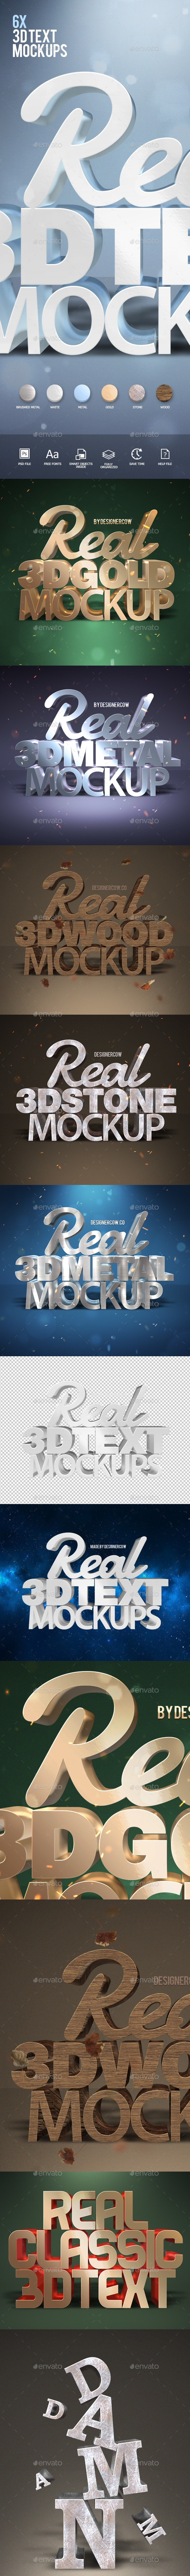 Real 3D Text Mockups - Miscellaneous Backgrounds